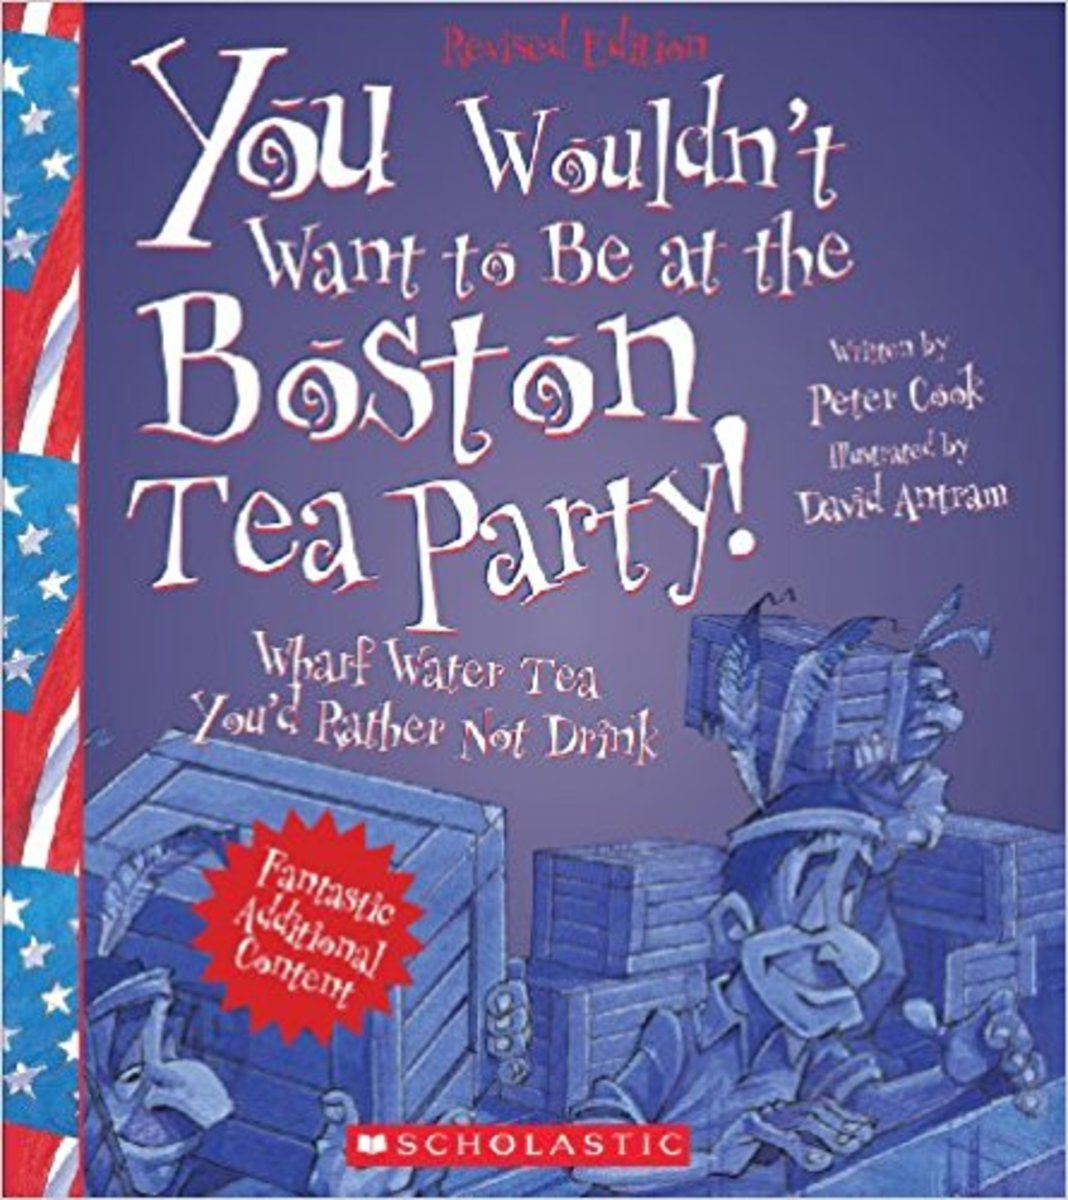 You Wouldn't Want to Be at the Boston Tea Party!: Wharf Water Tea You'd Rather Not Drink by Peter Cook